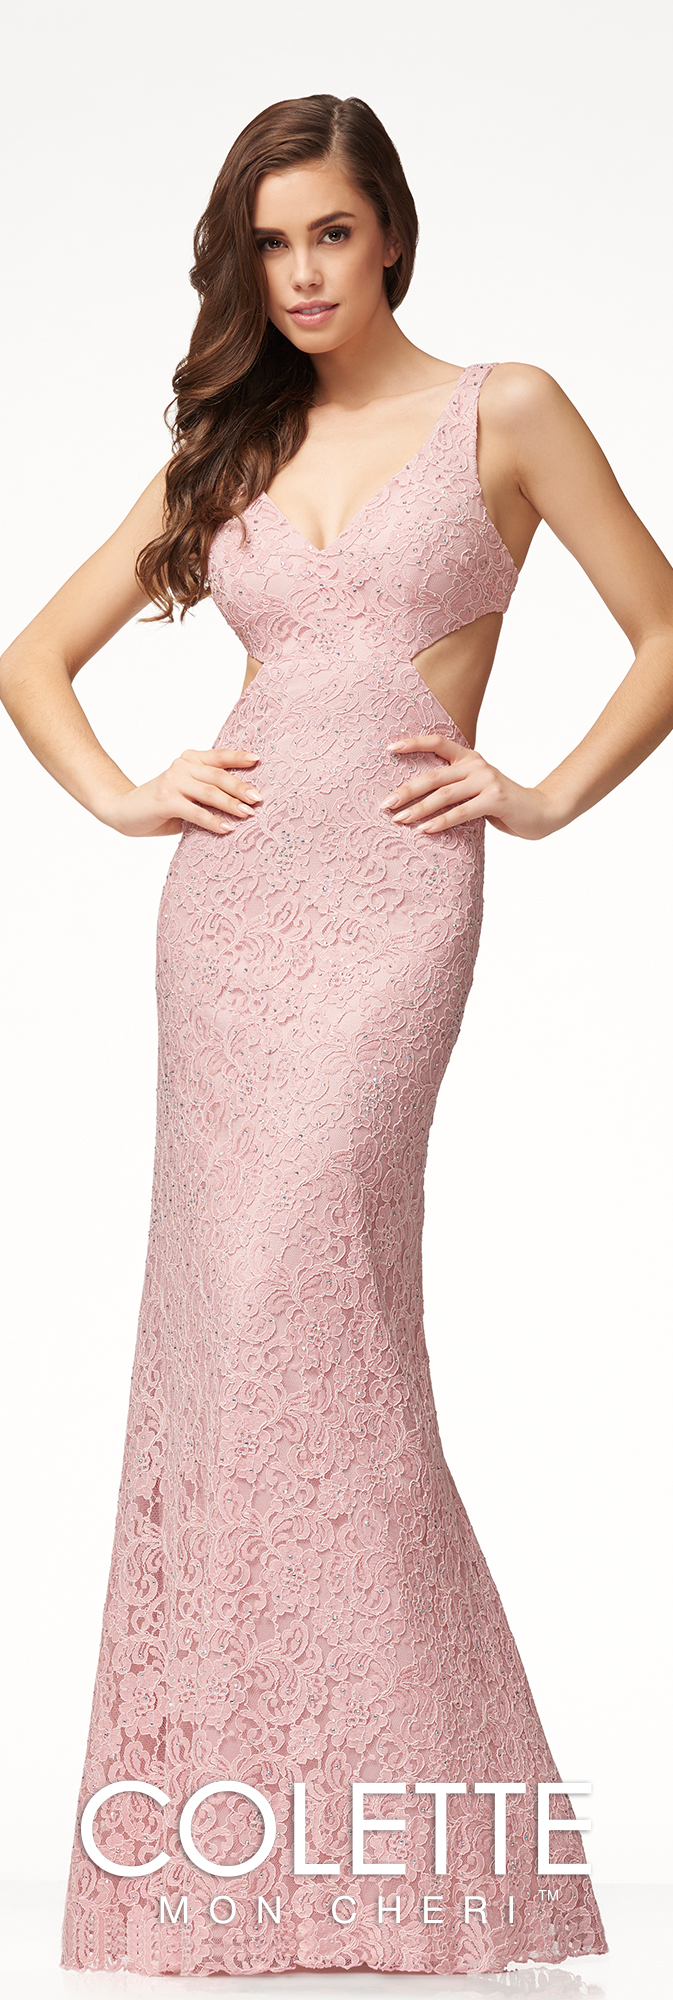 Sexy Fitted Lace Cut Out Prom Dress - Colette for Mon Cheri - CL18259